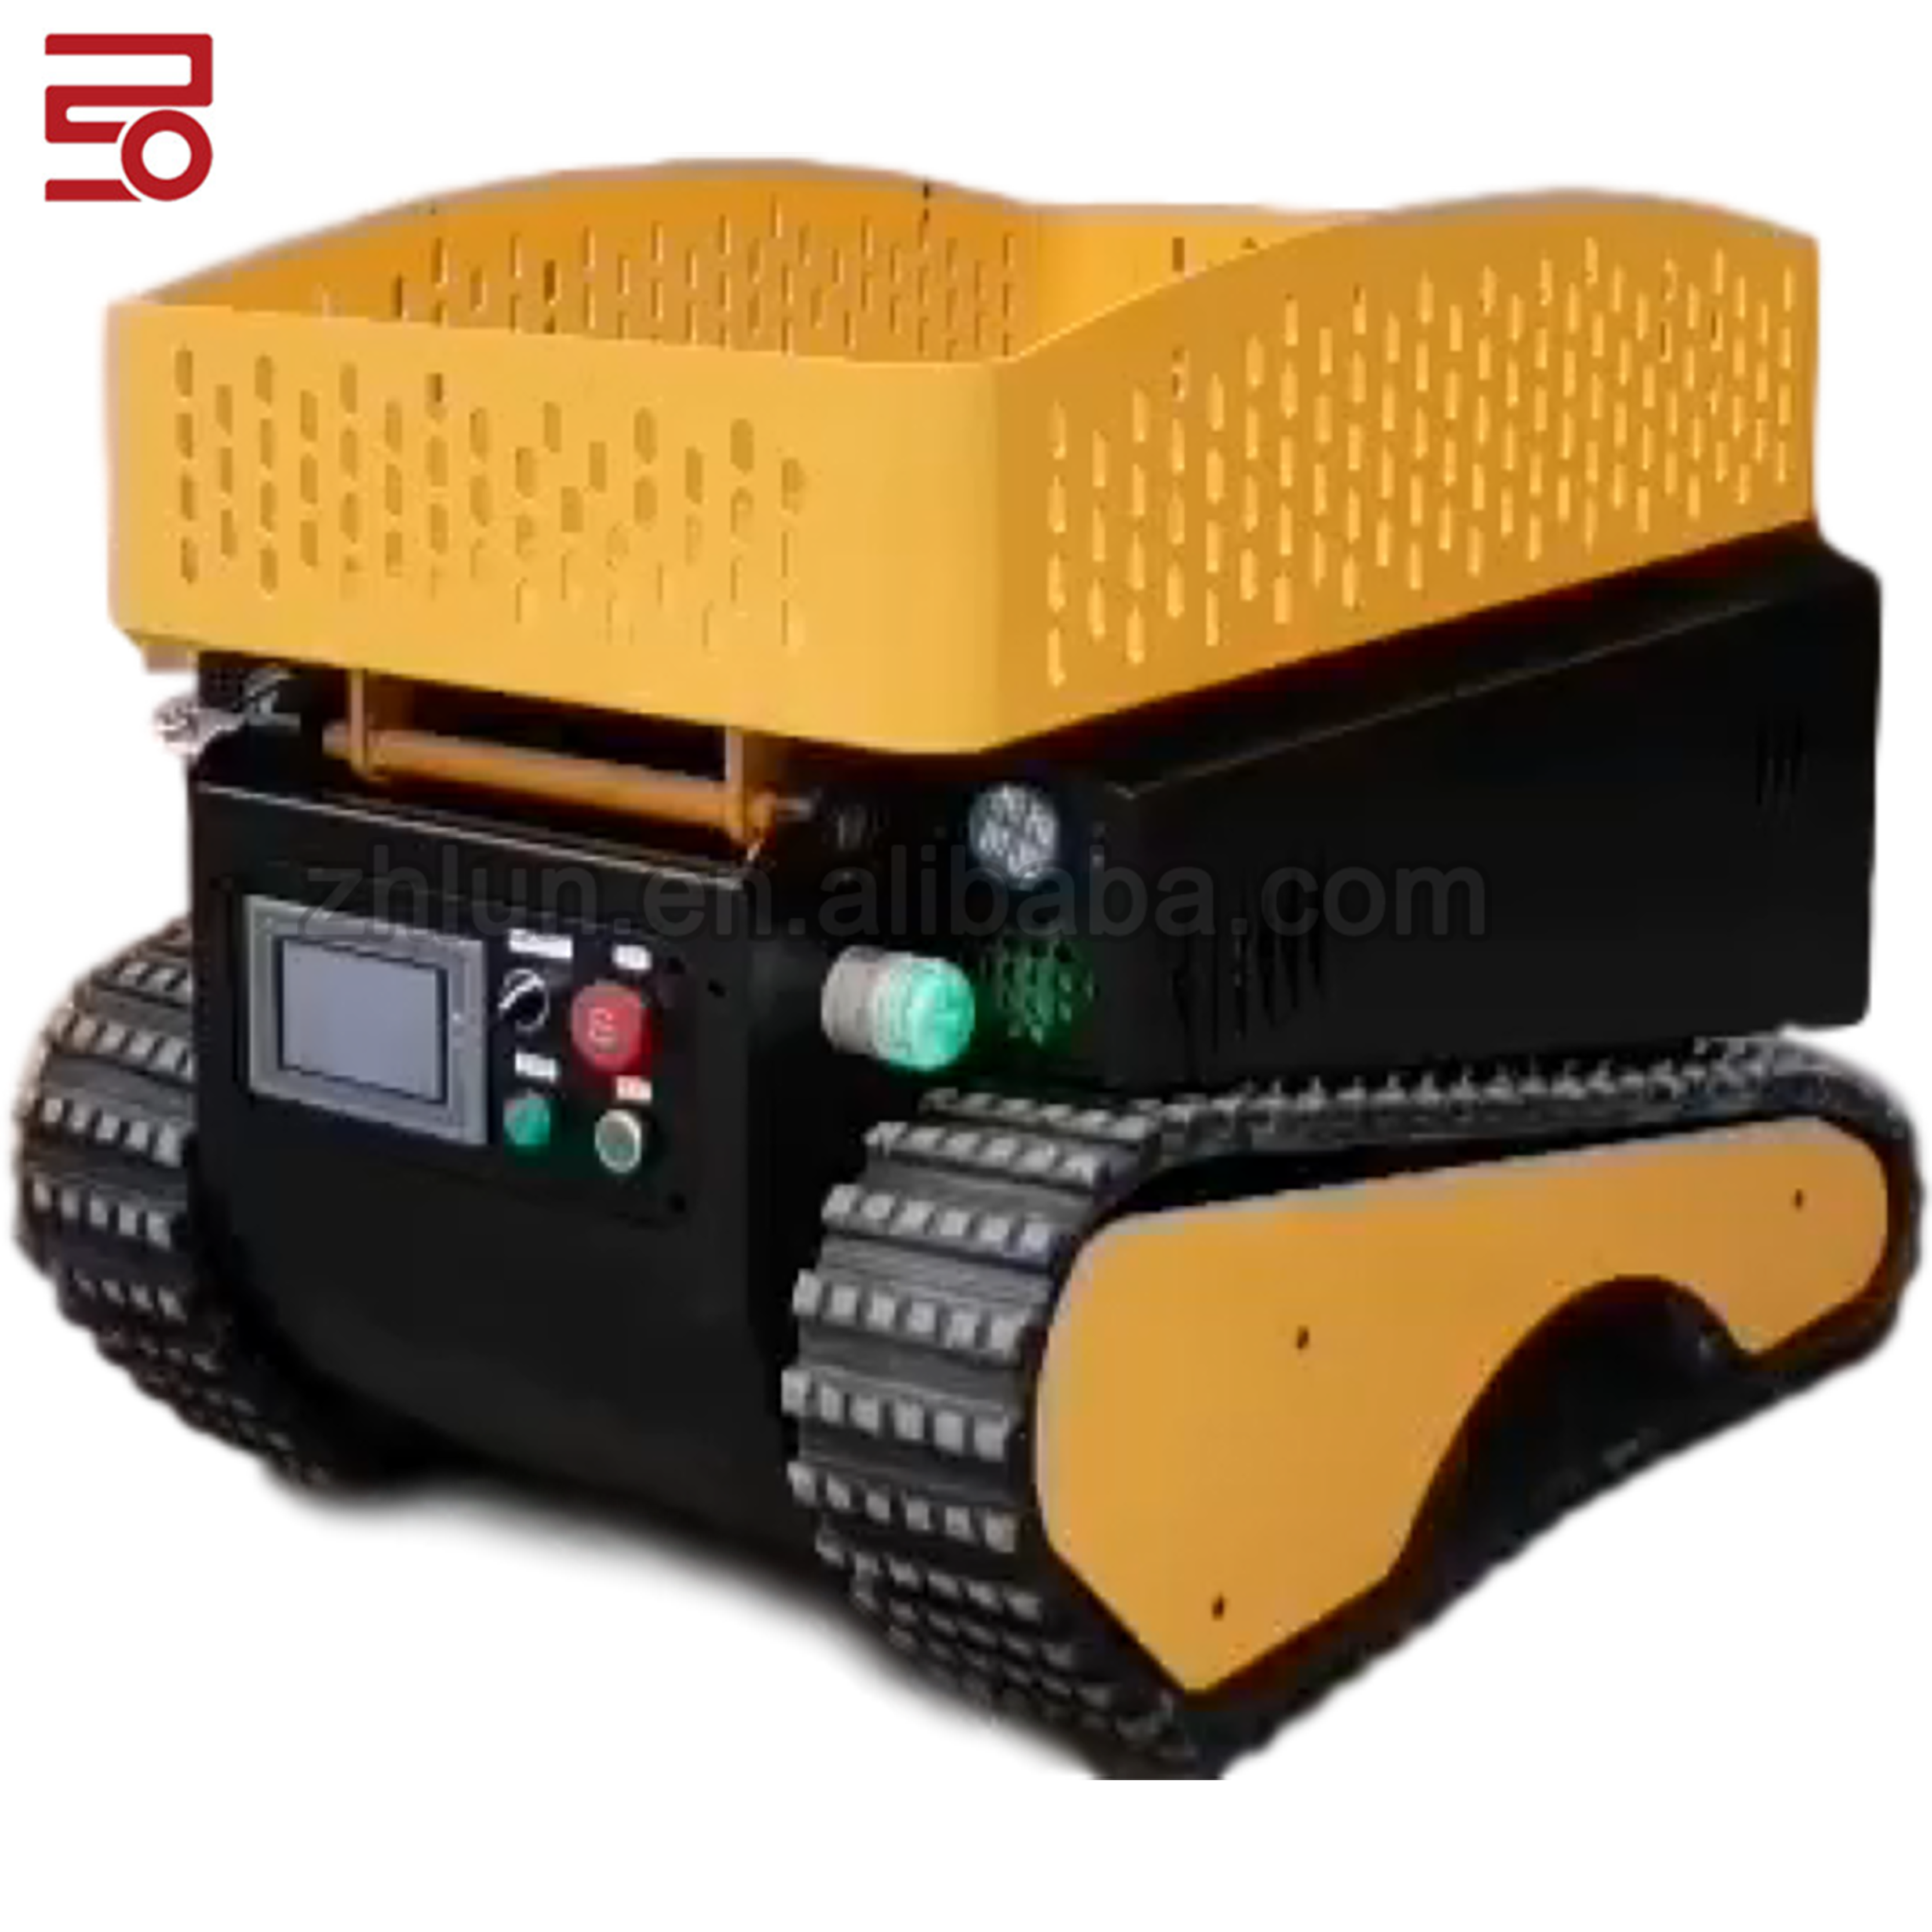 Guangzhou Double Track AGV With SLAM Laser Navigation For 200 KG Load Capacity